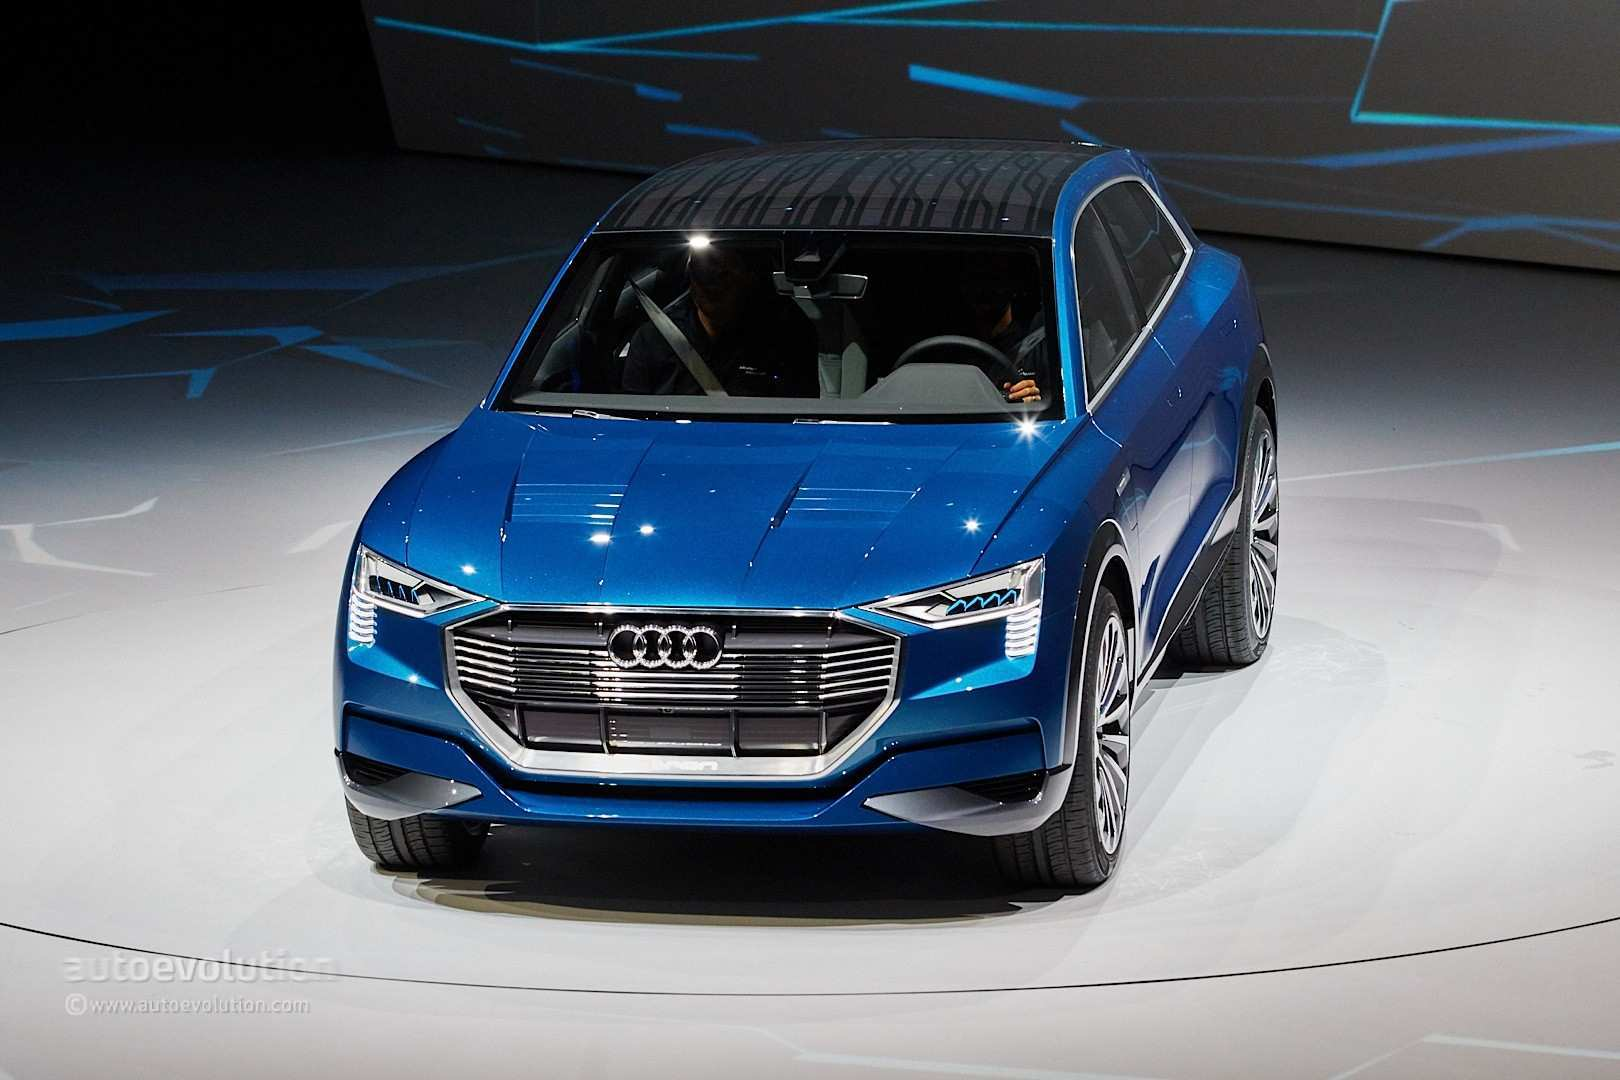 42 All New Audi Electric Suv 2020 Release Date